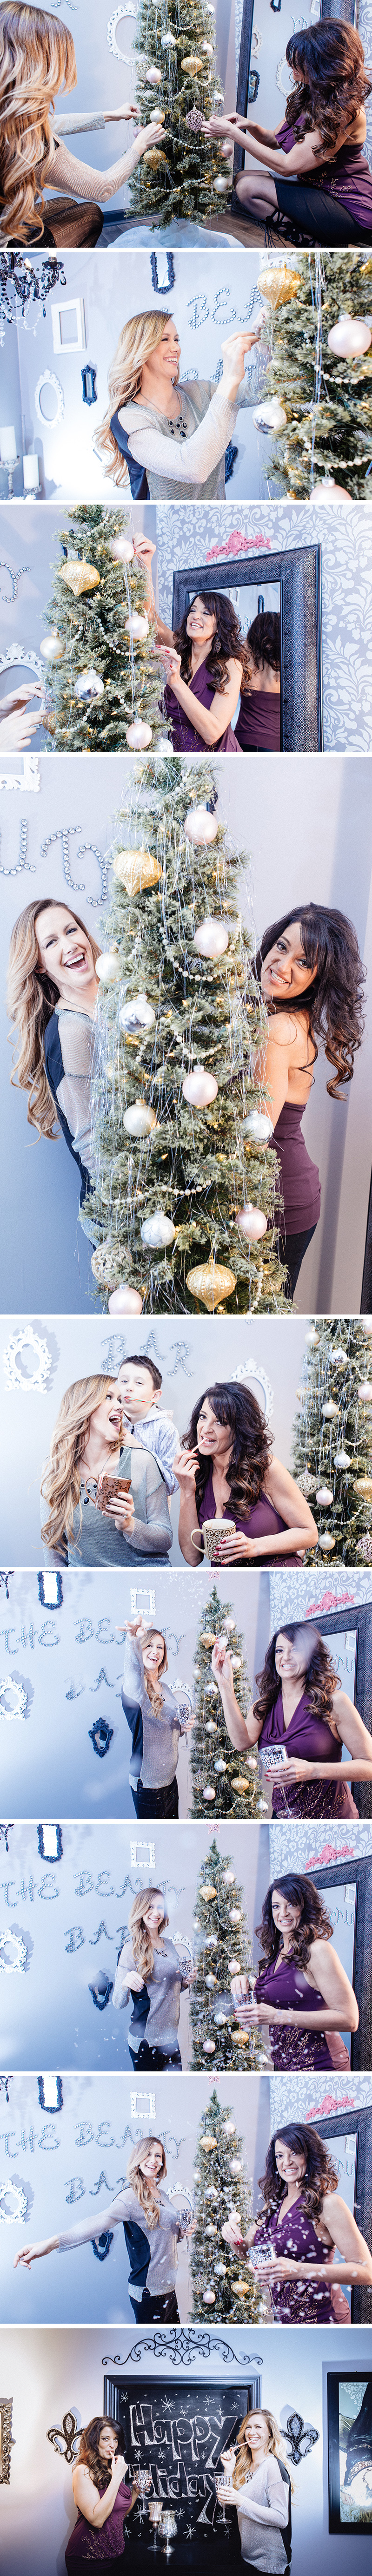 Holiday photos with Elyse and Kelly at The Beauty Bar in Middlesex, NJ